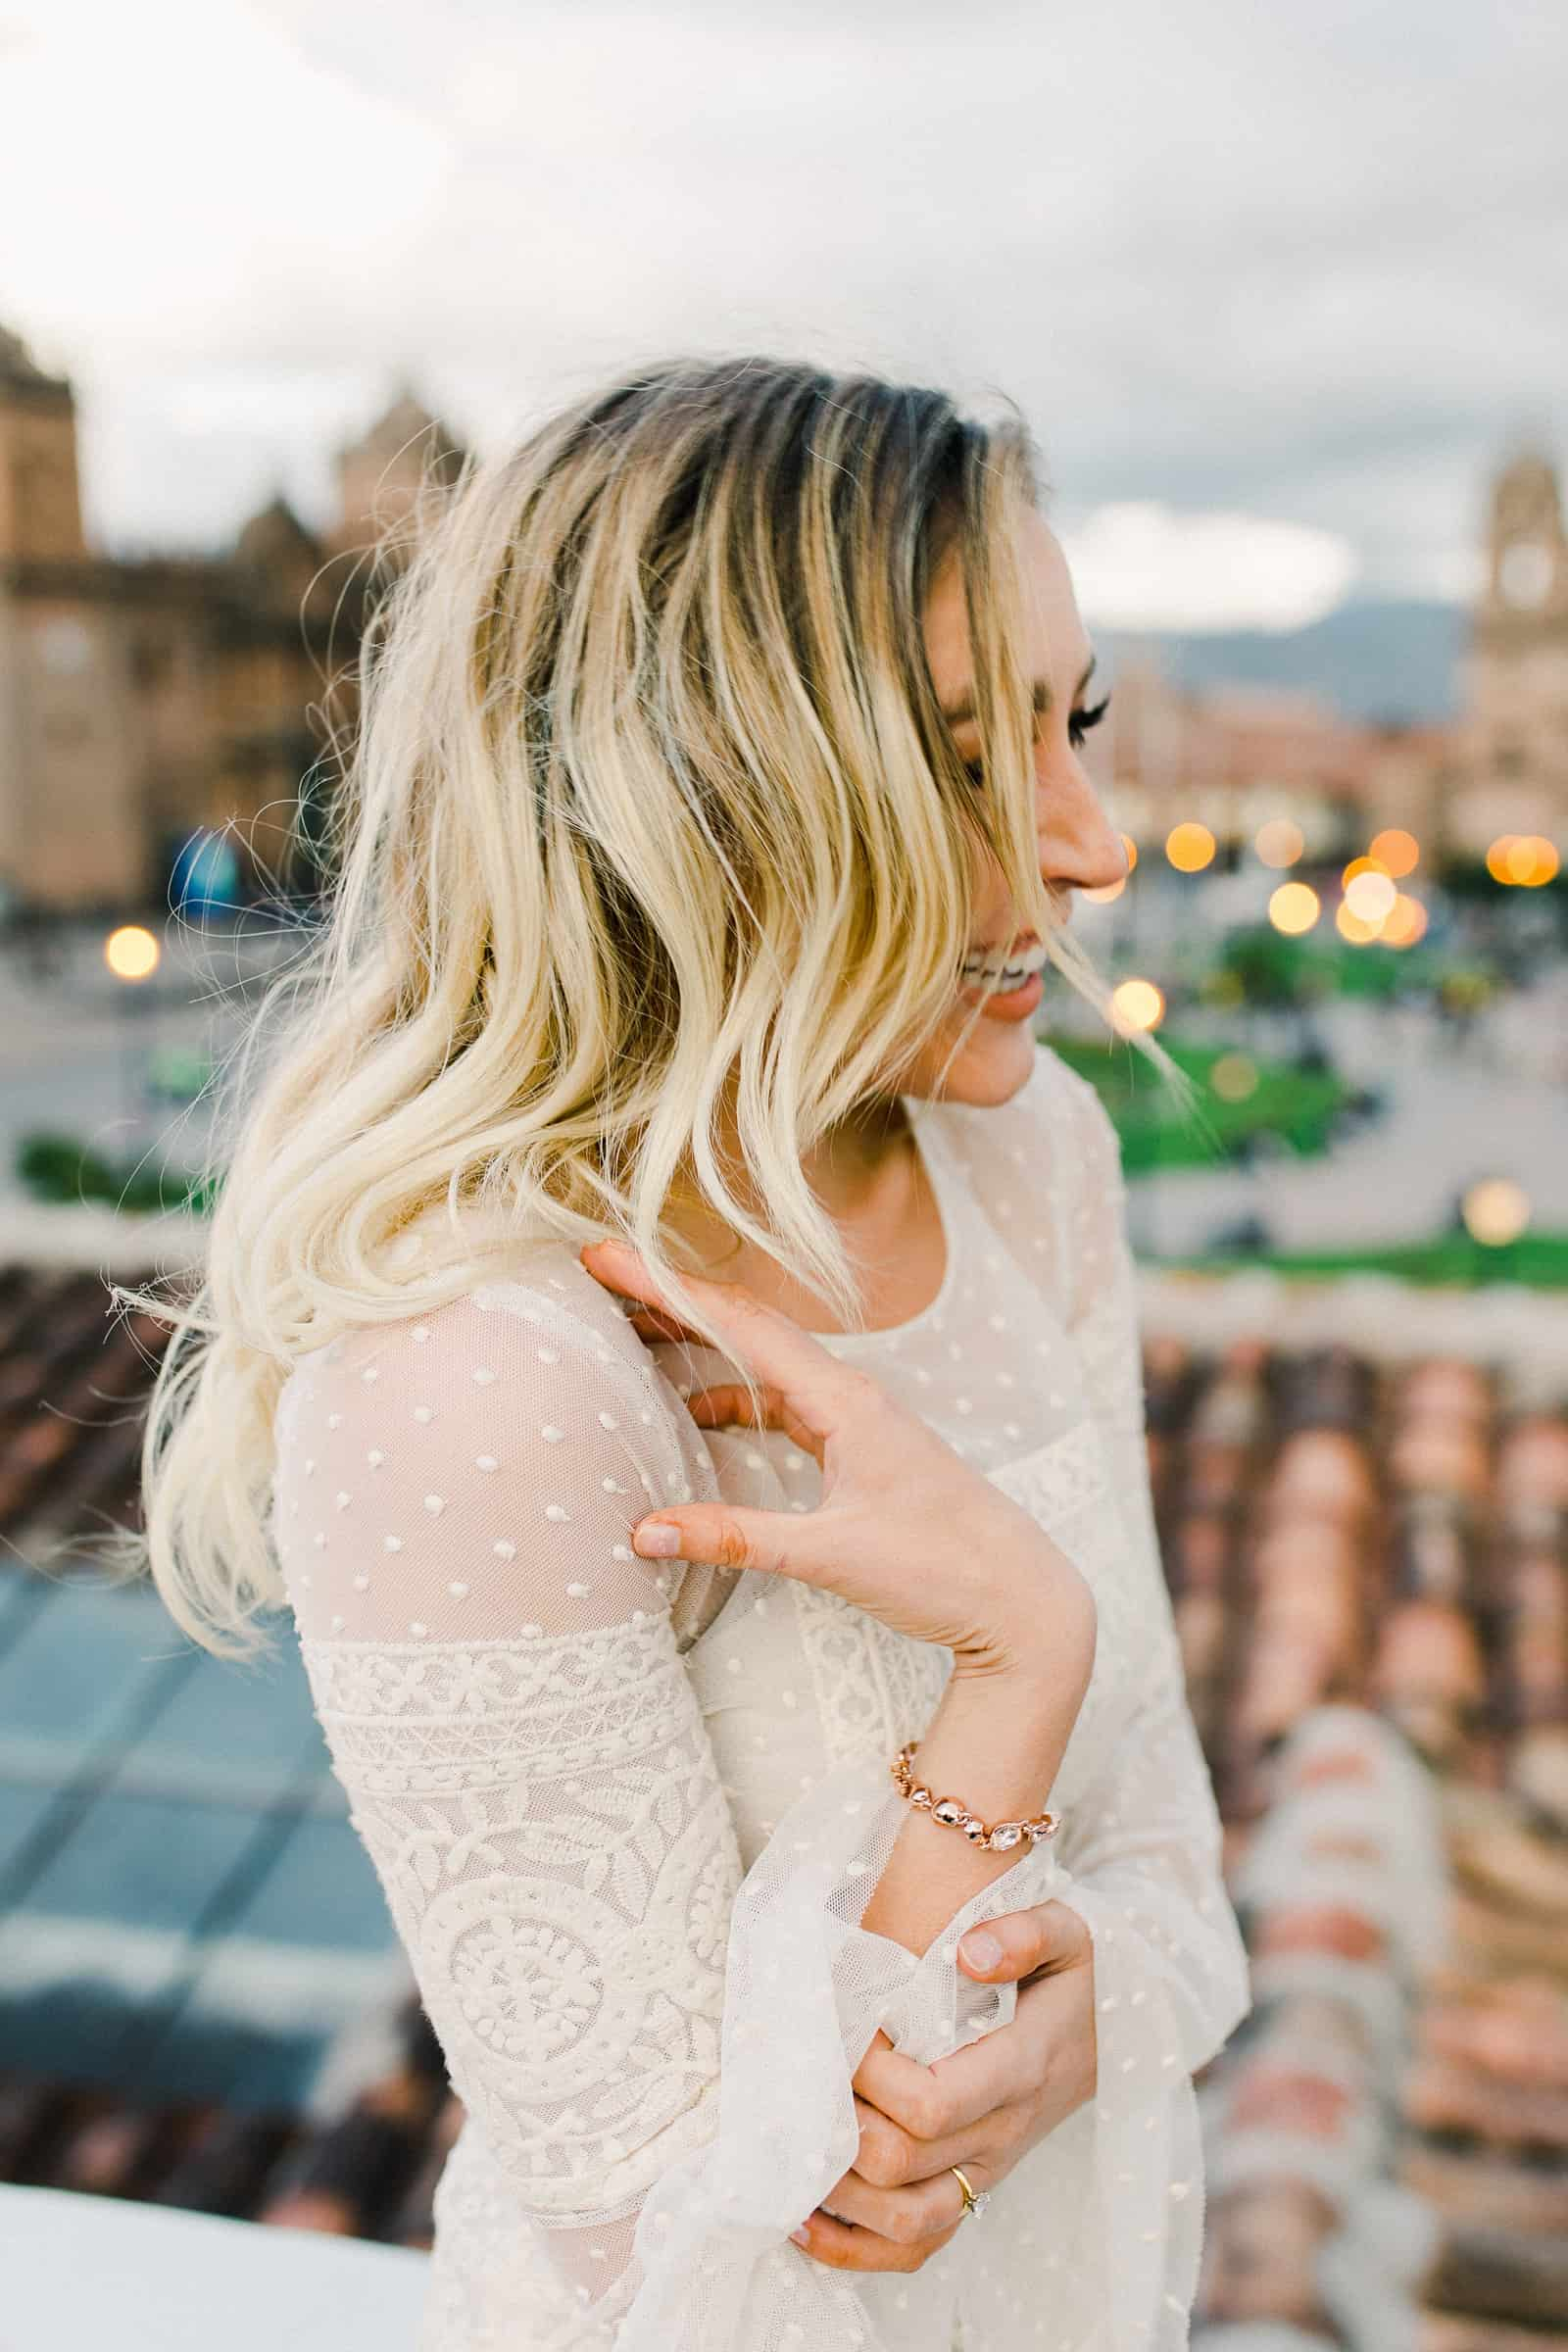 Cusco Peru Destination Wedding Inspiration, travel photography, boho bride